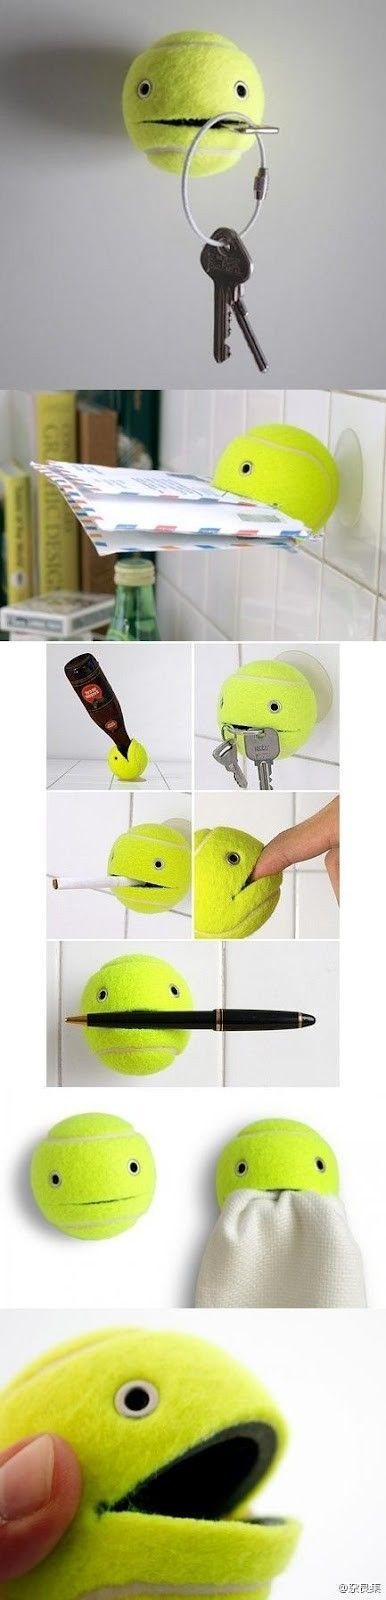 Diy Tennis Ball Hanger